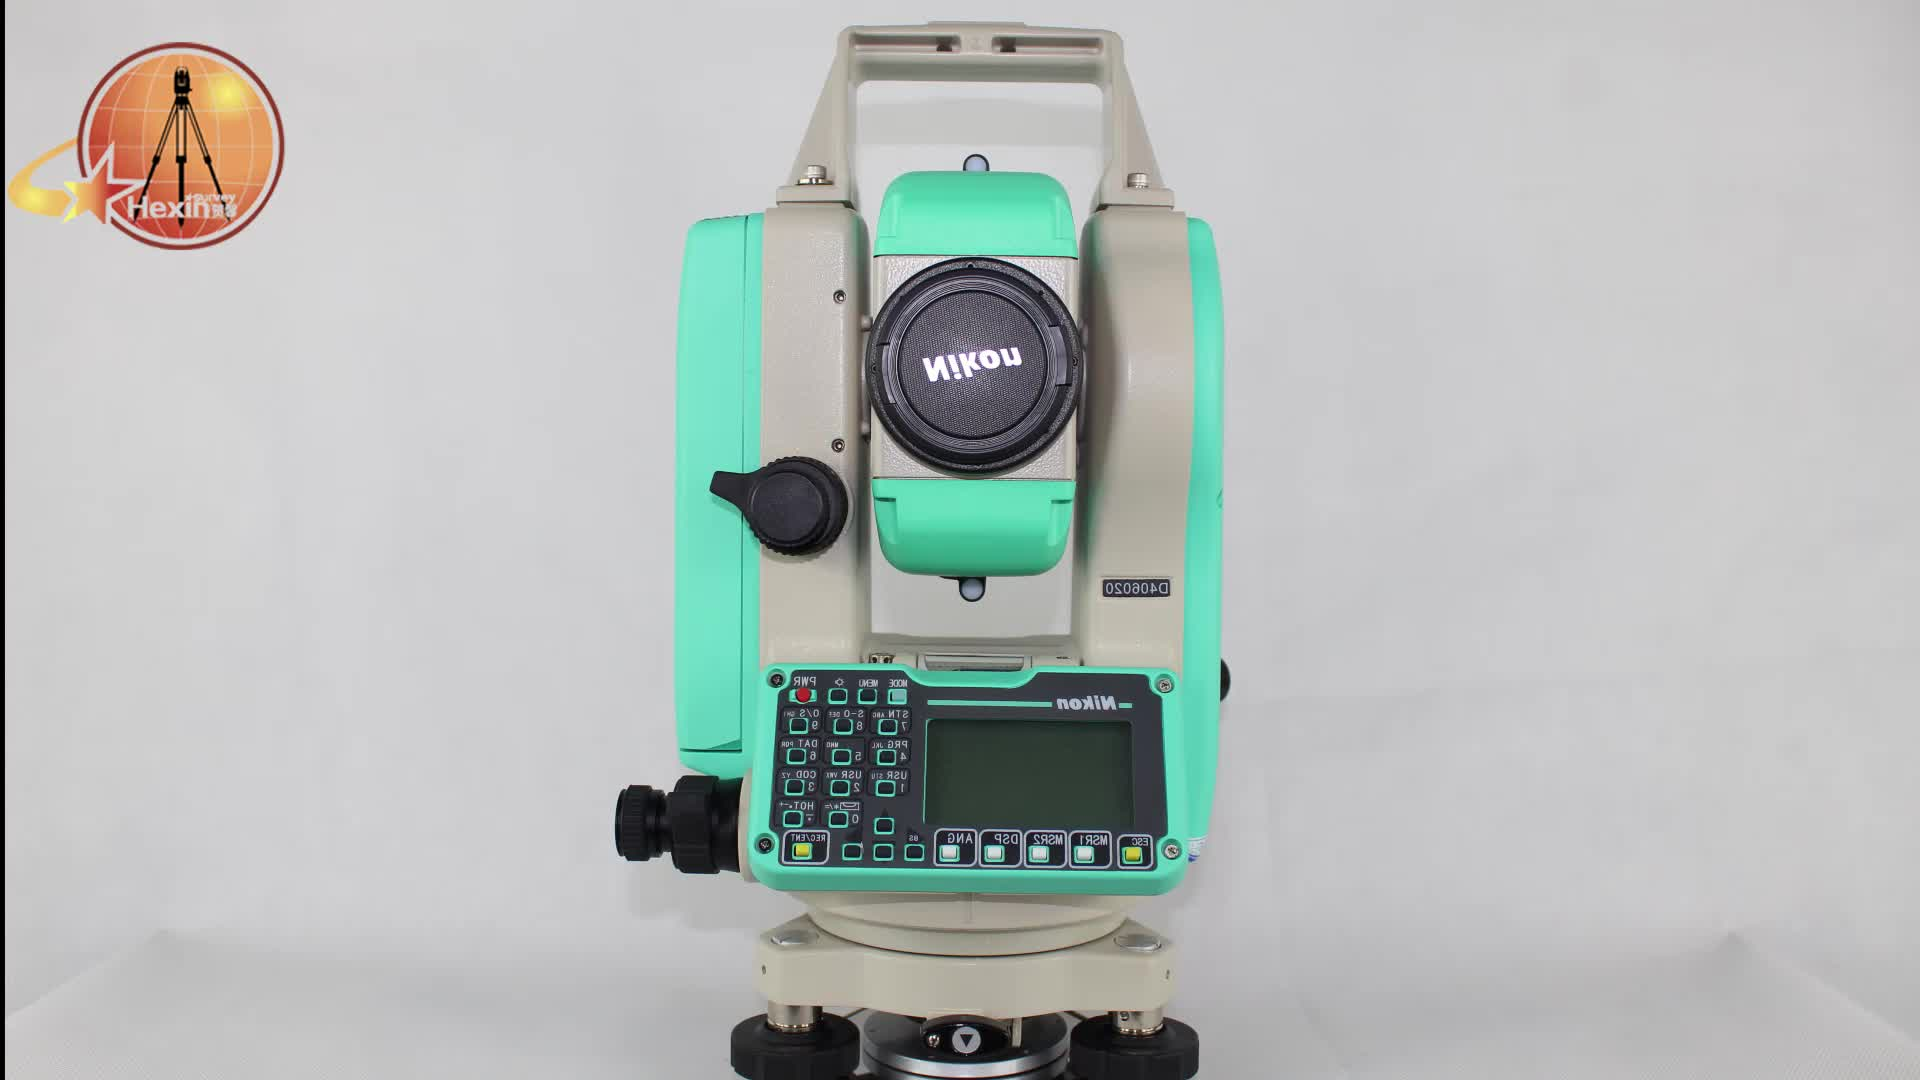 Nikon  NPL - 322 + 5 P total station geodetic surveying instruments with 50,000 point storage